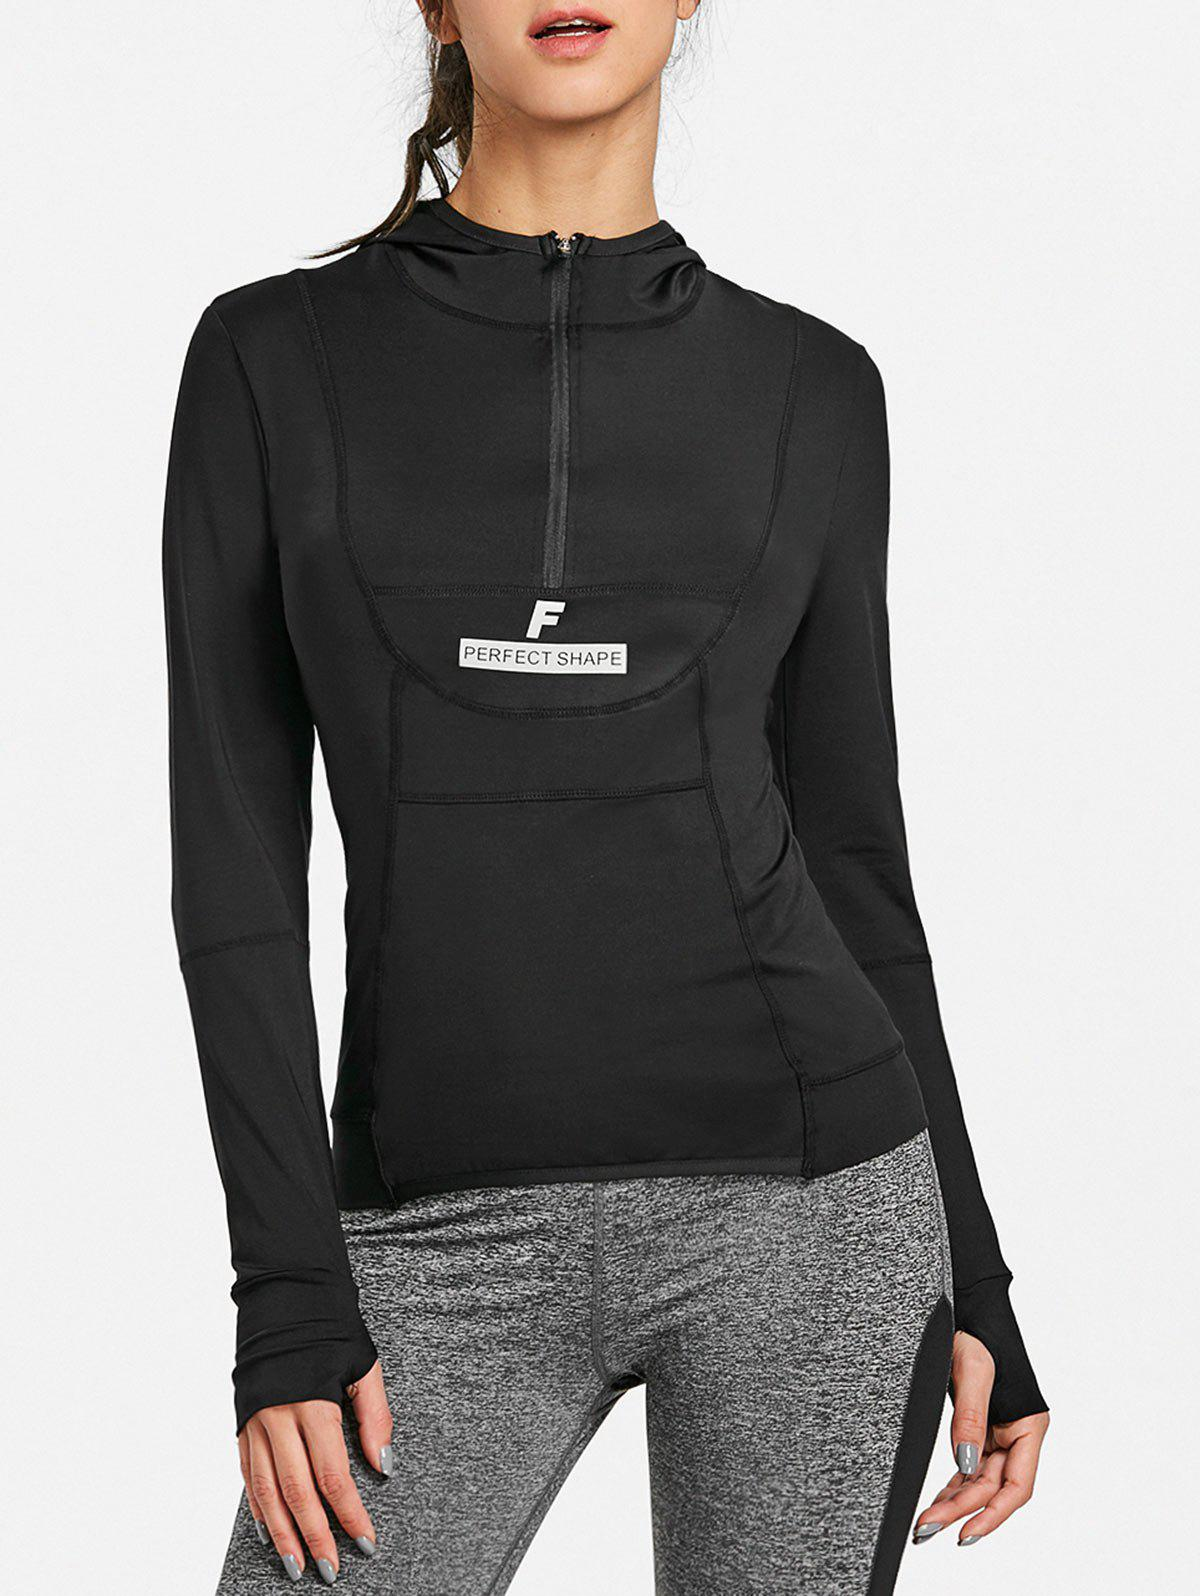 Best Sports Half Zip Up Long Sleeve Tee